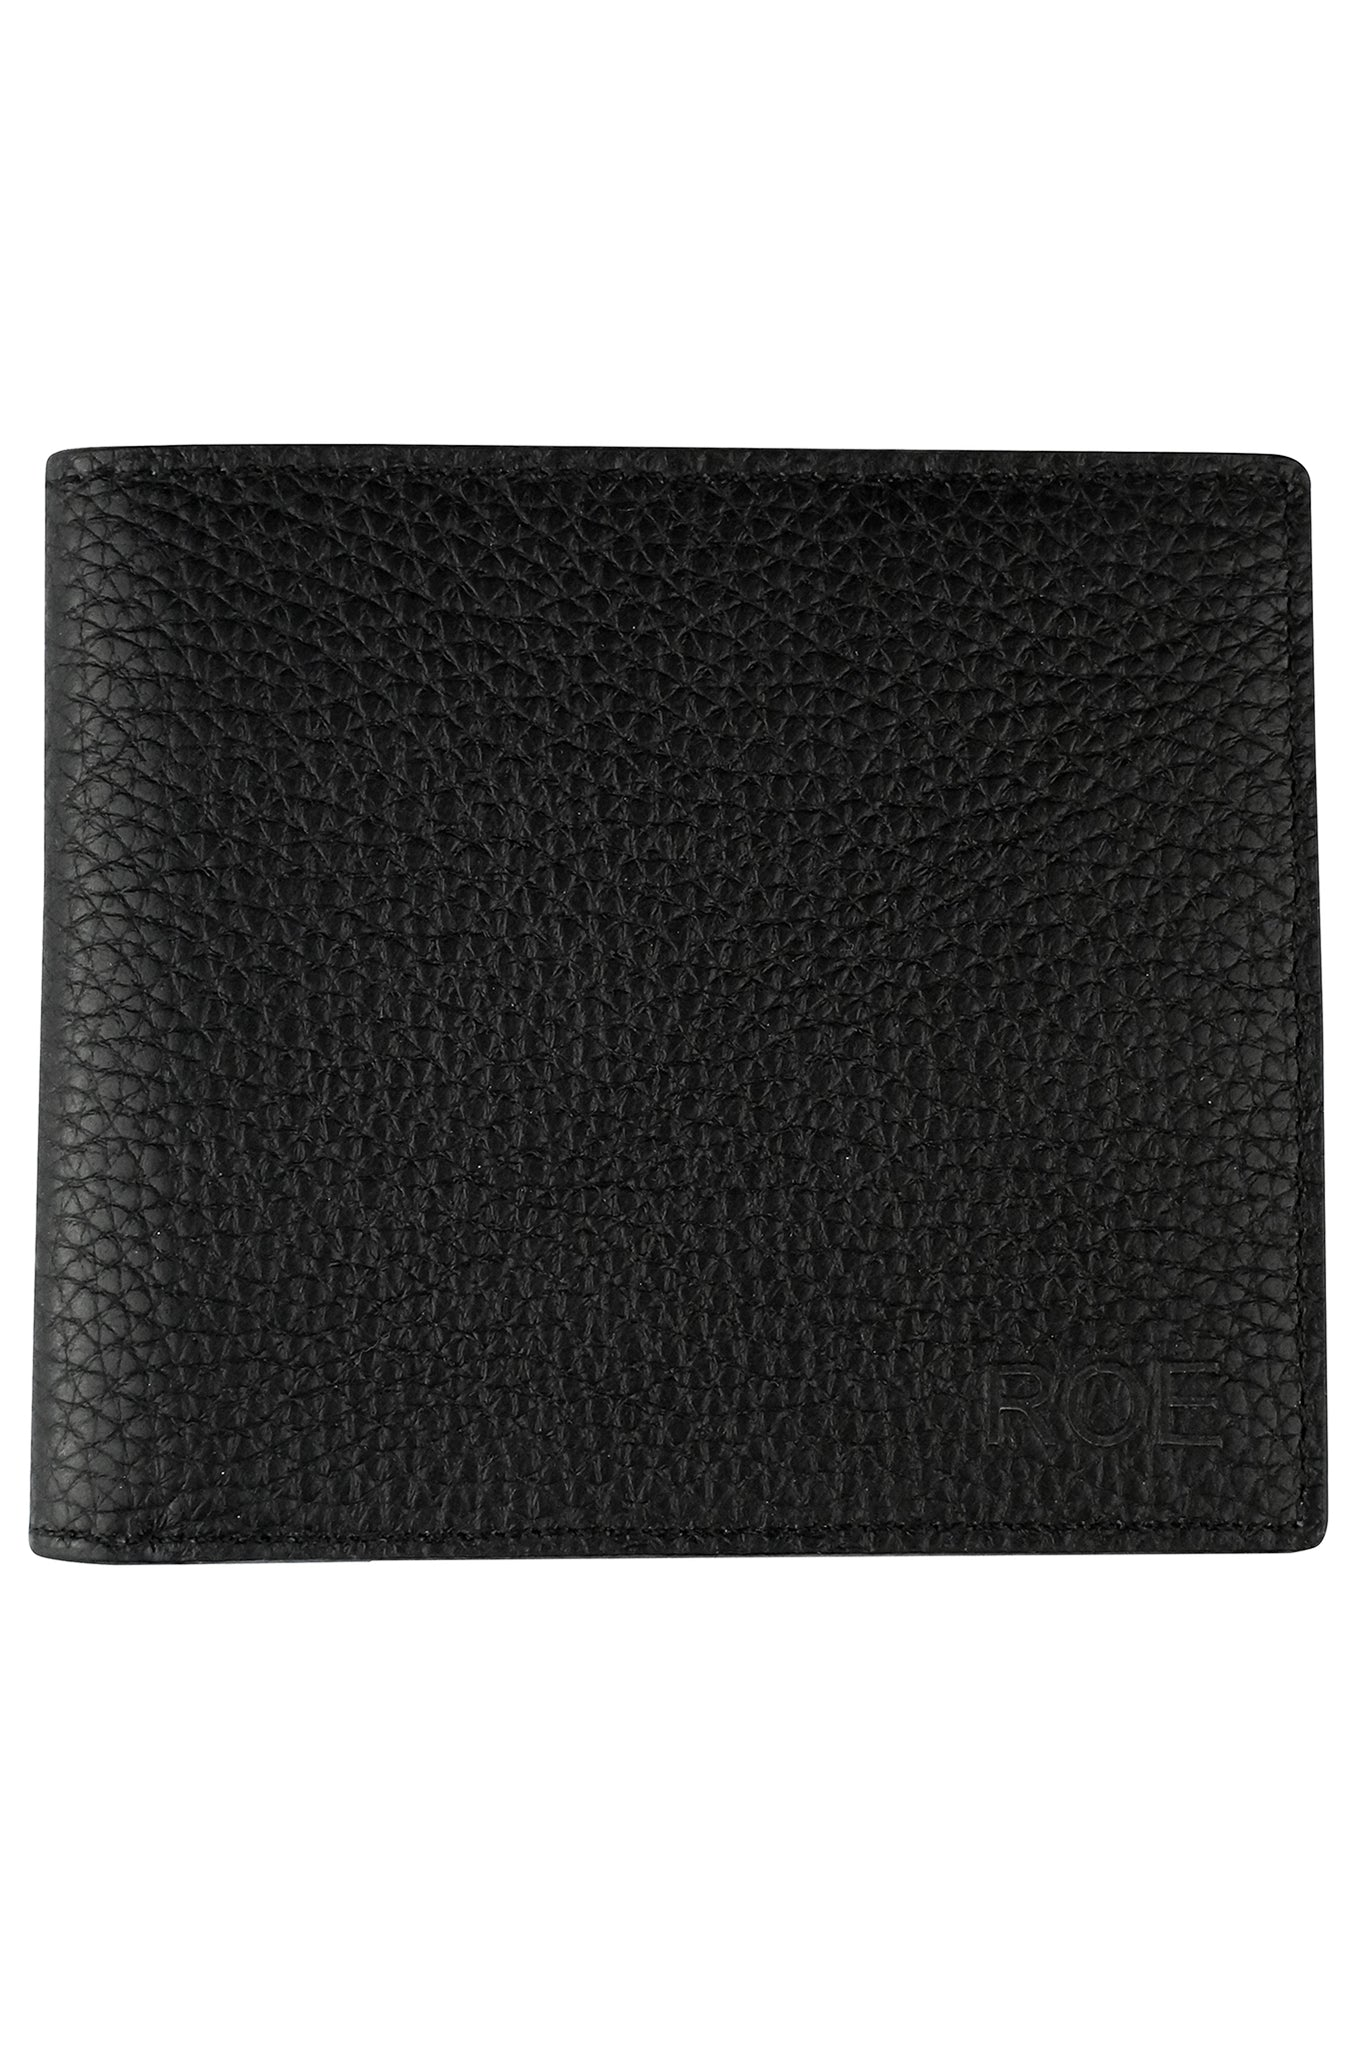 ESSENTIAL WALLET, Accessories - ROE